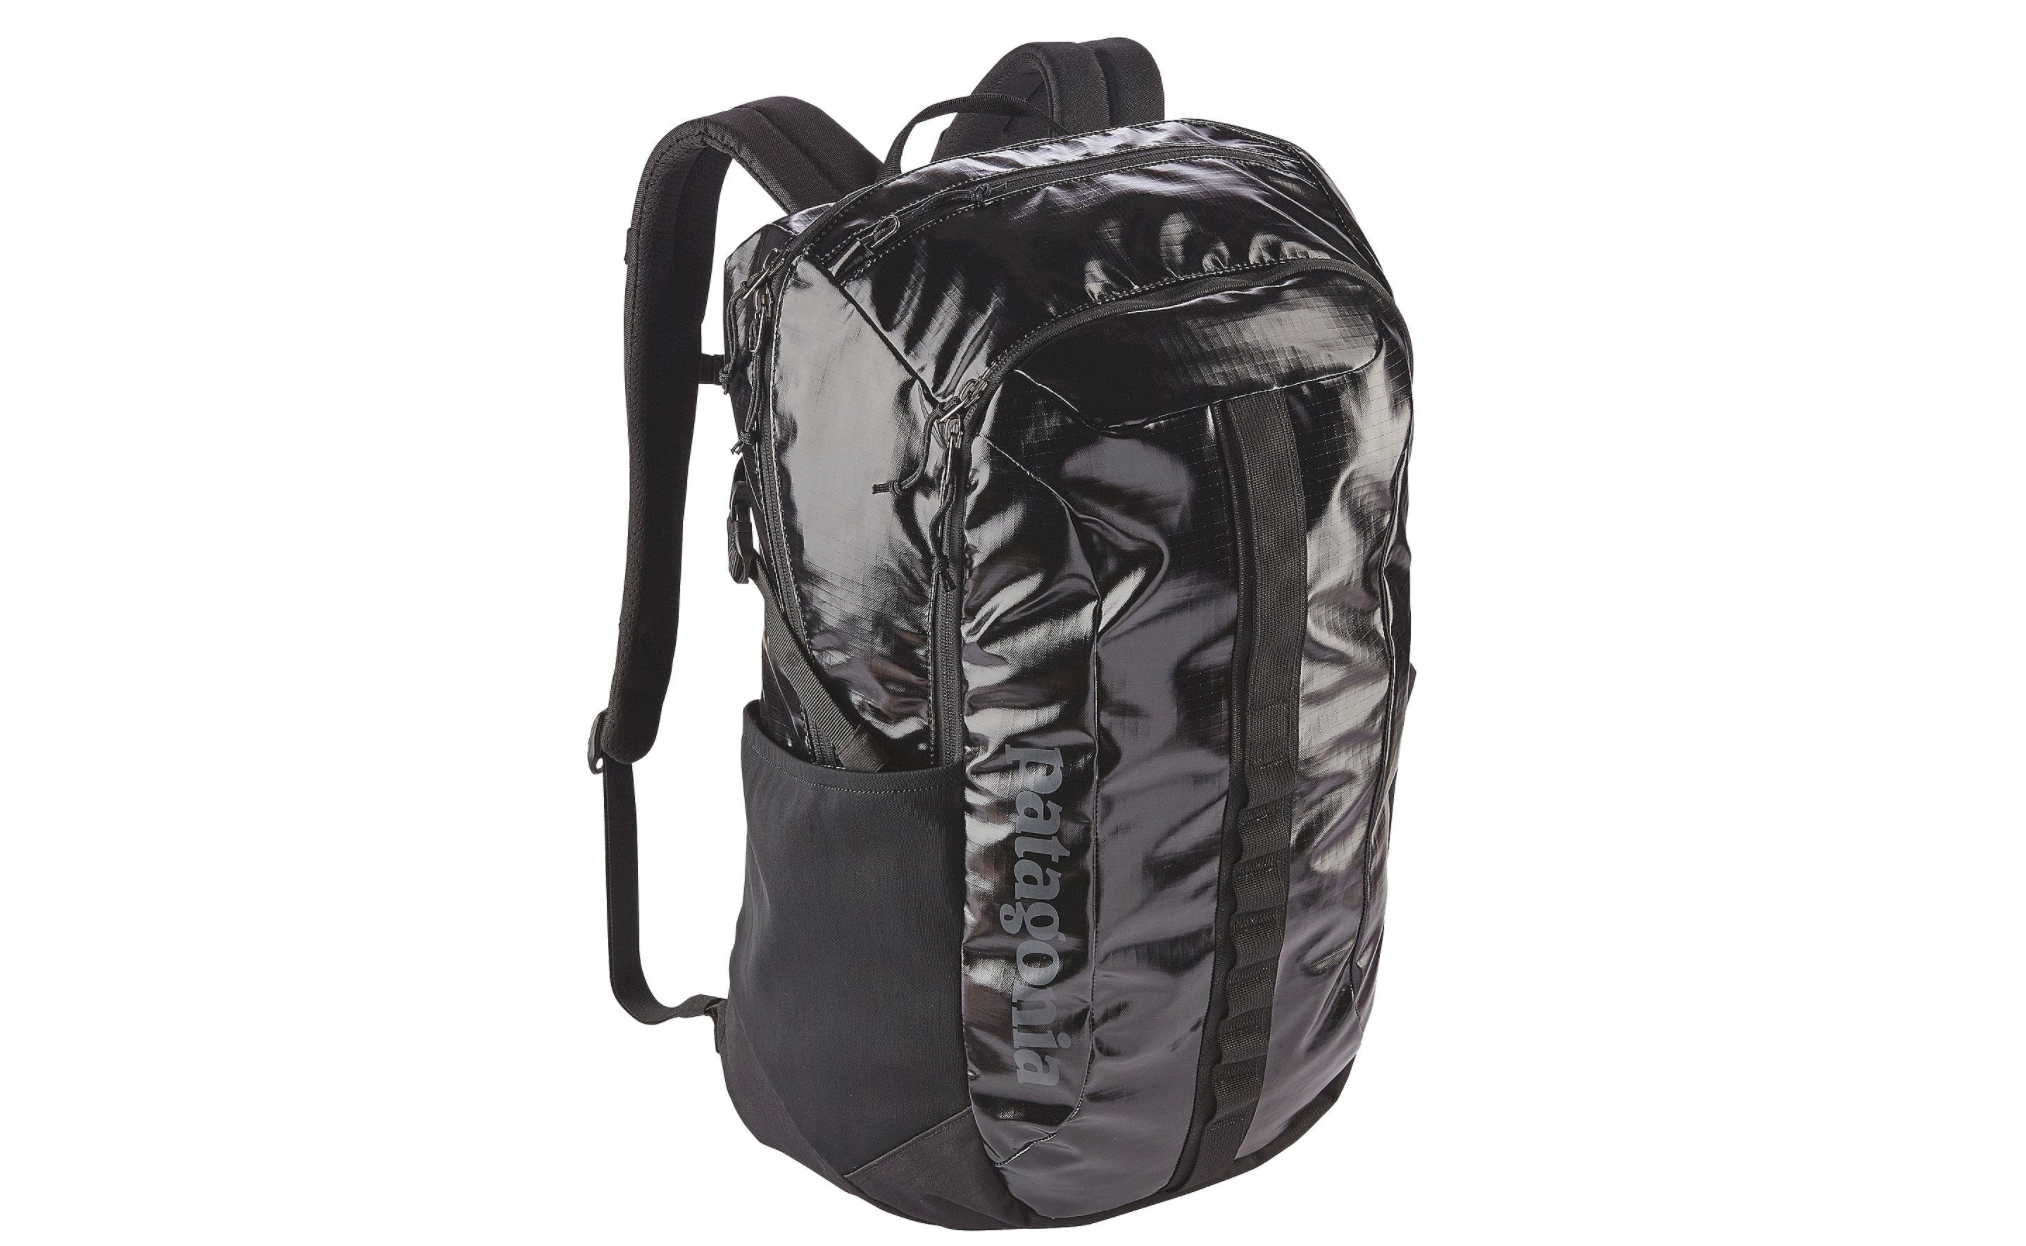 Copy of Patagonia Black Hole Pack